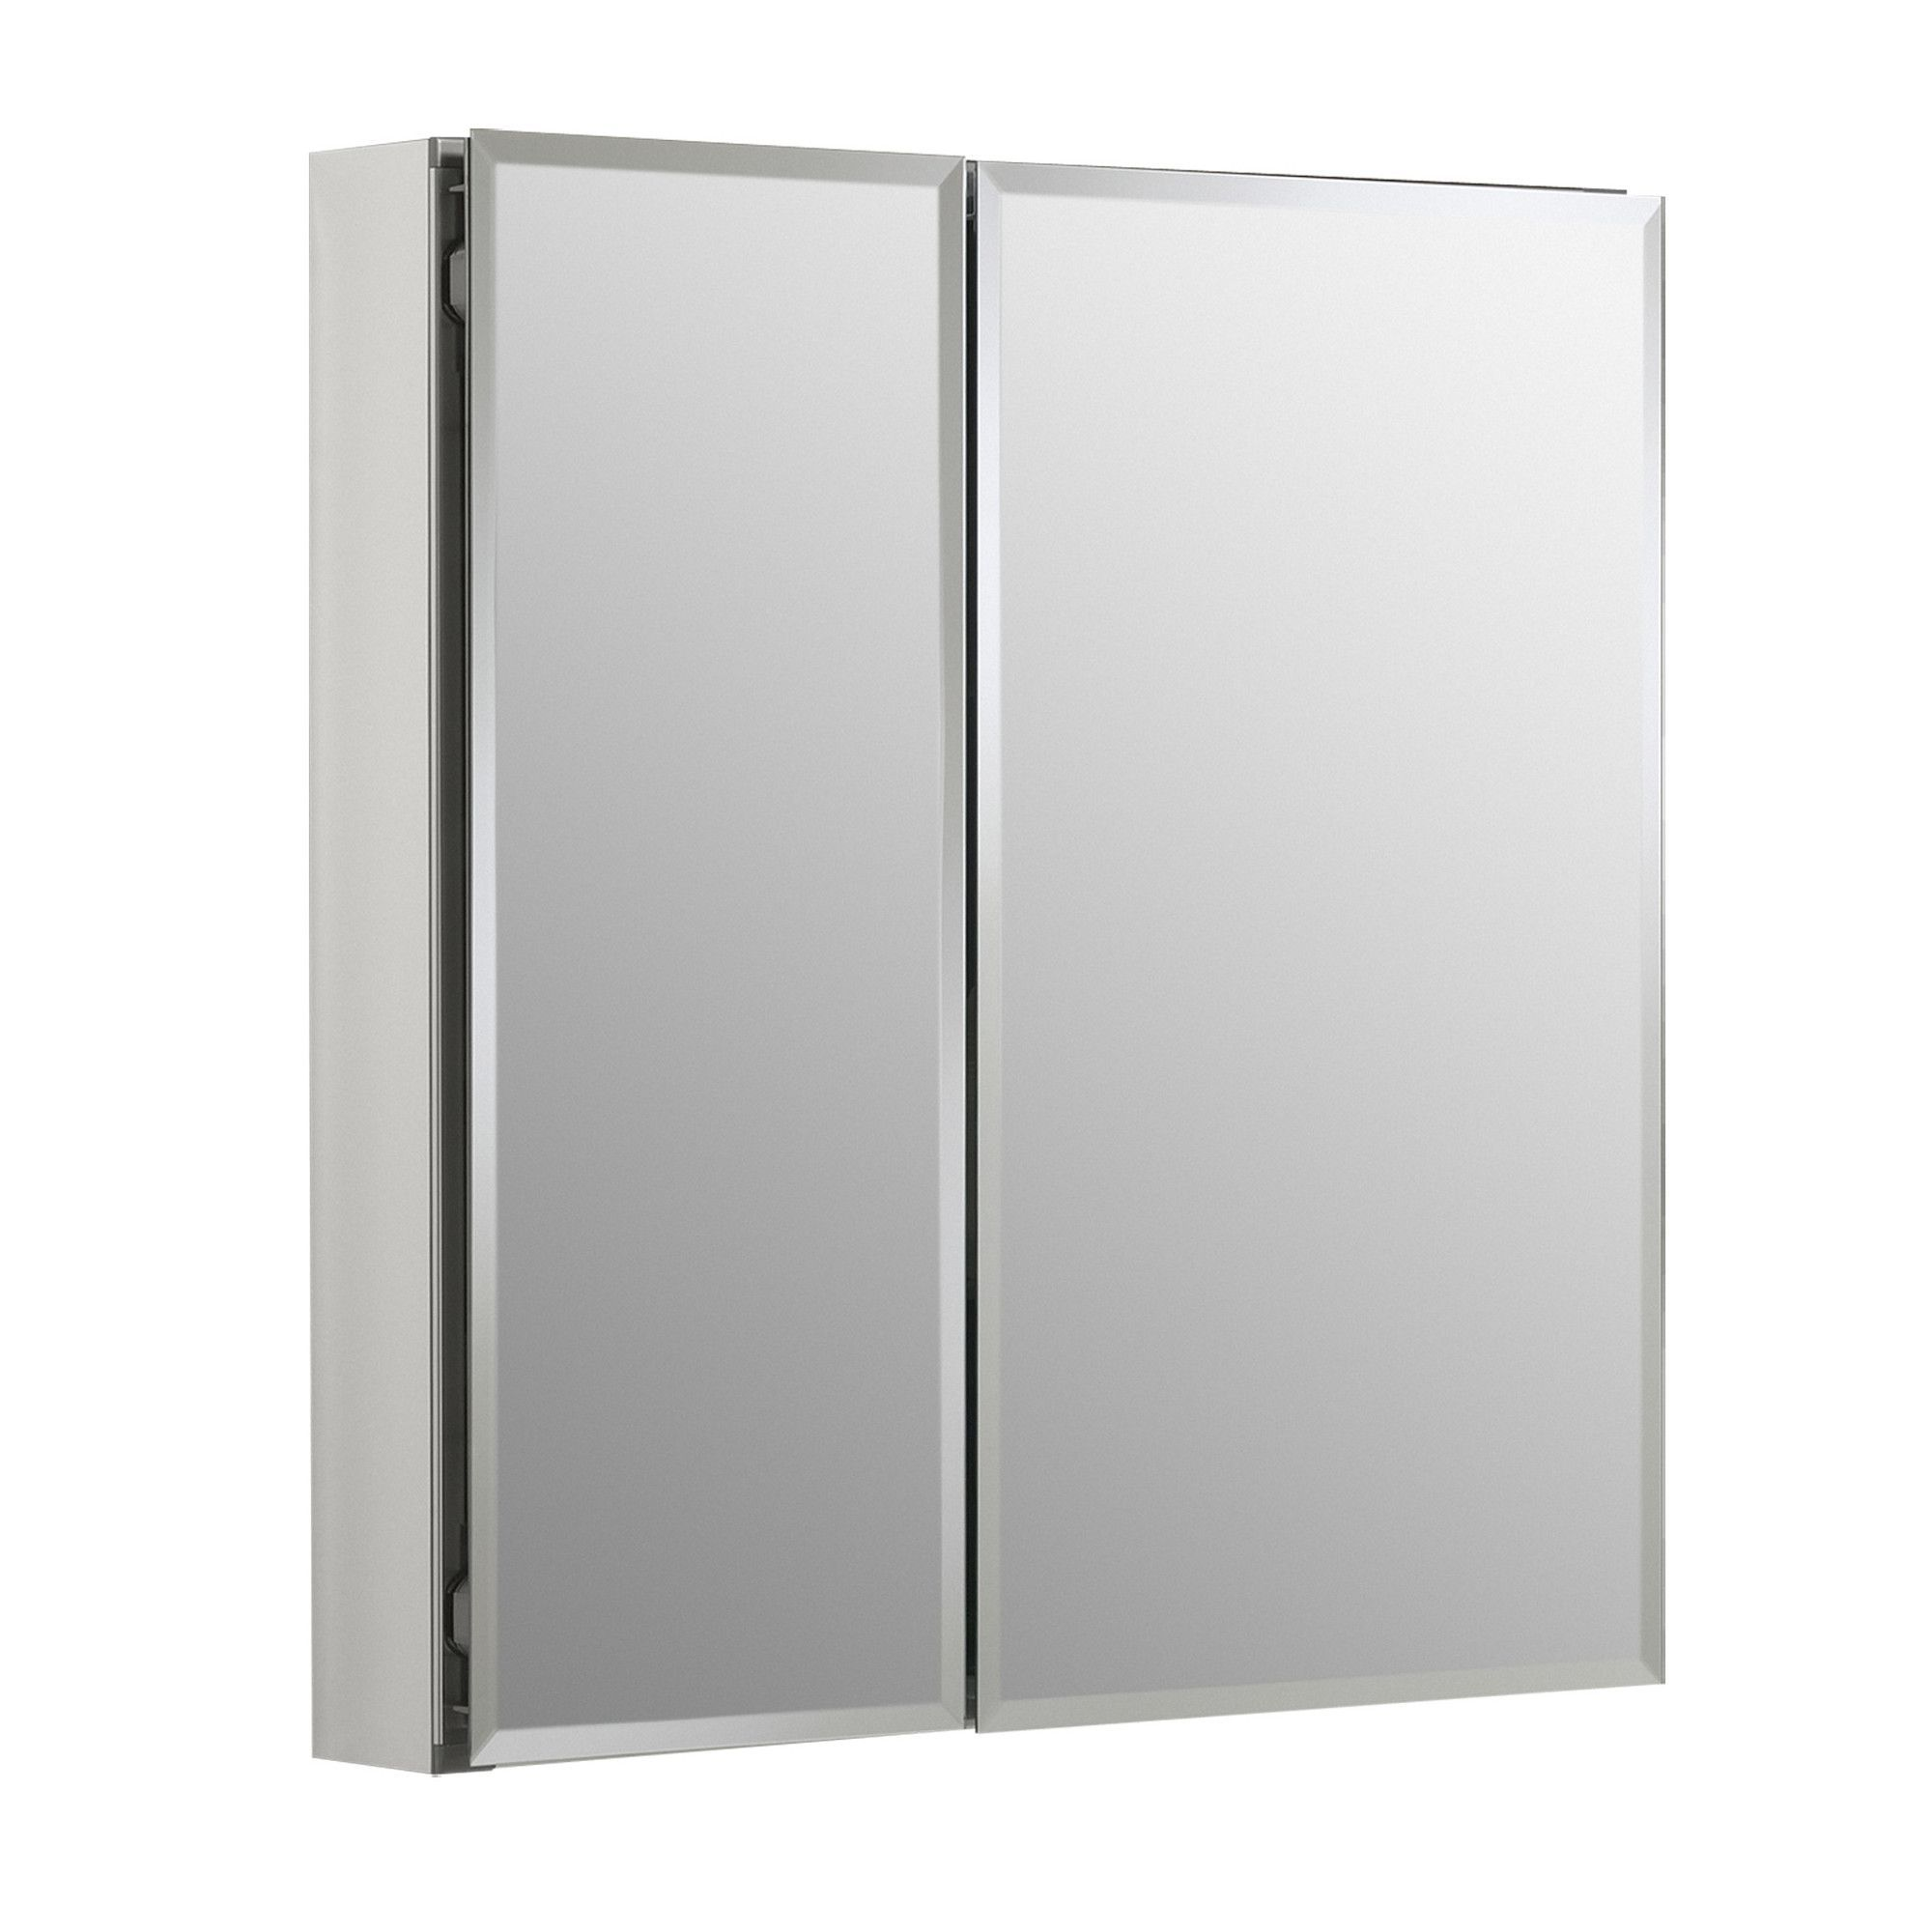 25 X 26 Recessed Or Surface Mount Frameless 2 Doors Medicine